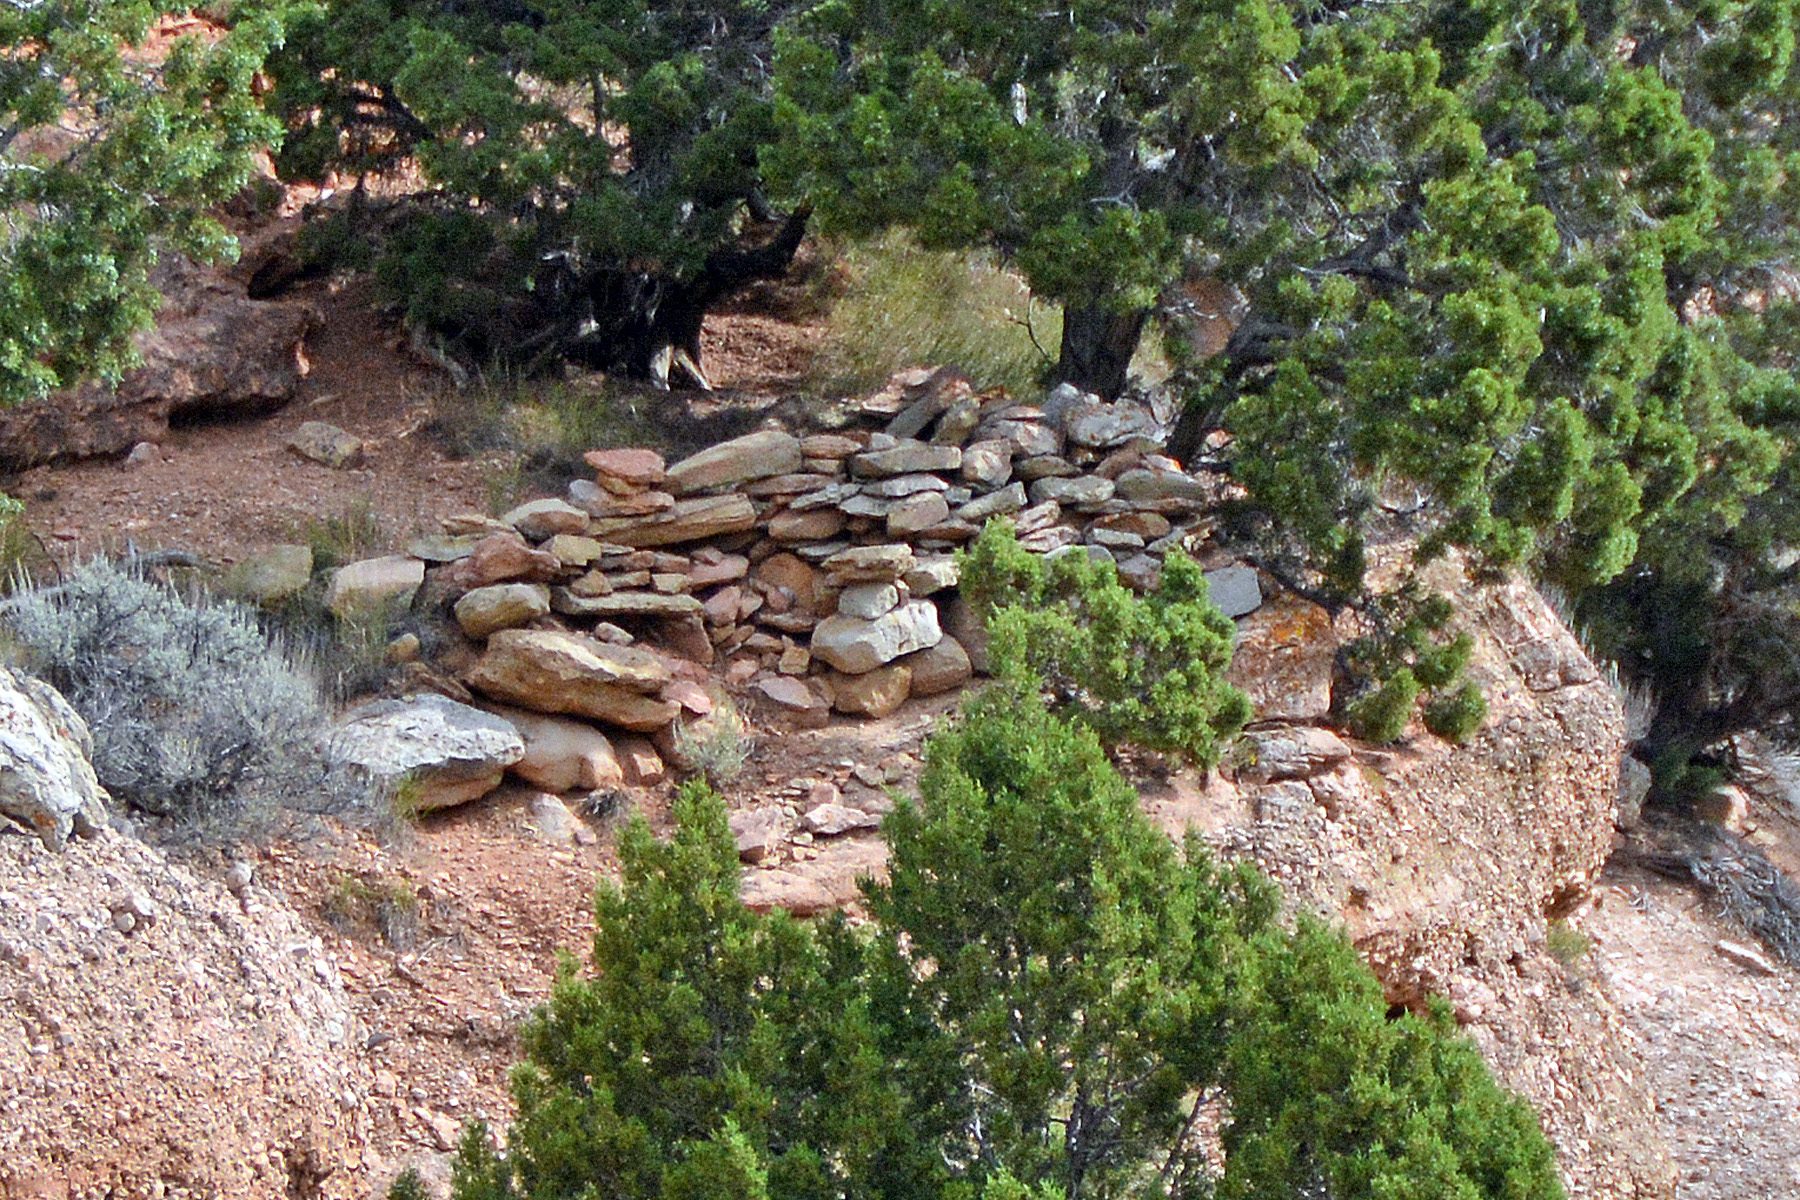 Remnant of breastworks in Echo Canyon. This may have been initially prepared during the Utah War period.